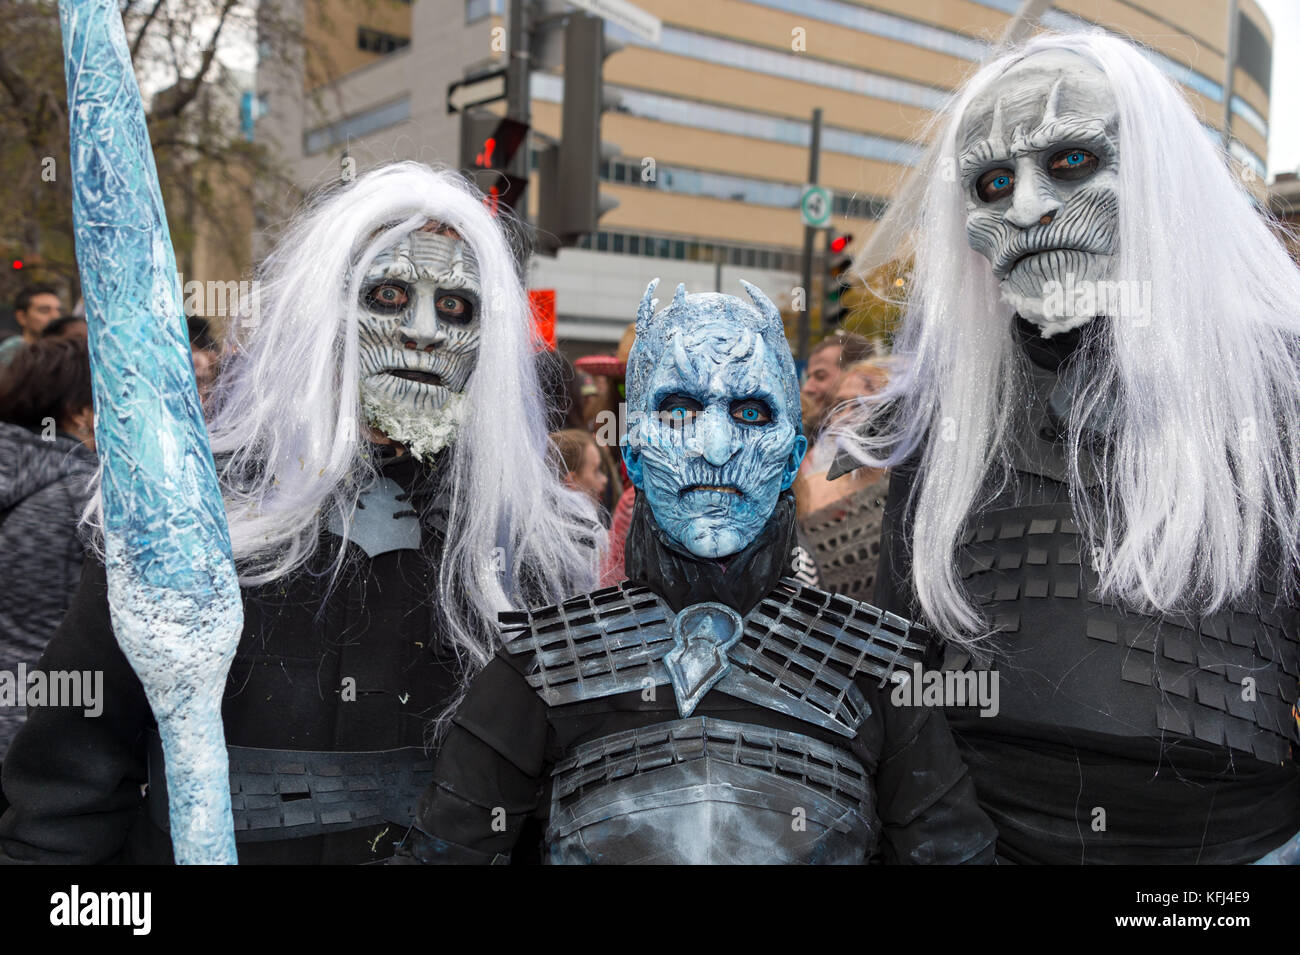 Montreal Canada - October 28 2017 Game of Thrones White Walkers and Night King taking part in the Zombie Walk in Montreal Downtown & Montreal Canada - October 28 2017: Game of Thrones White Walkers ...